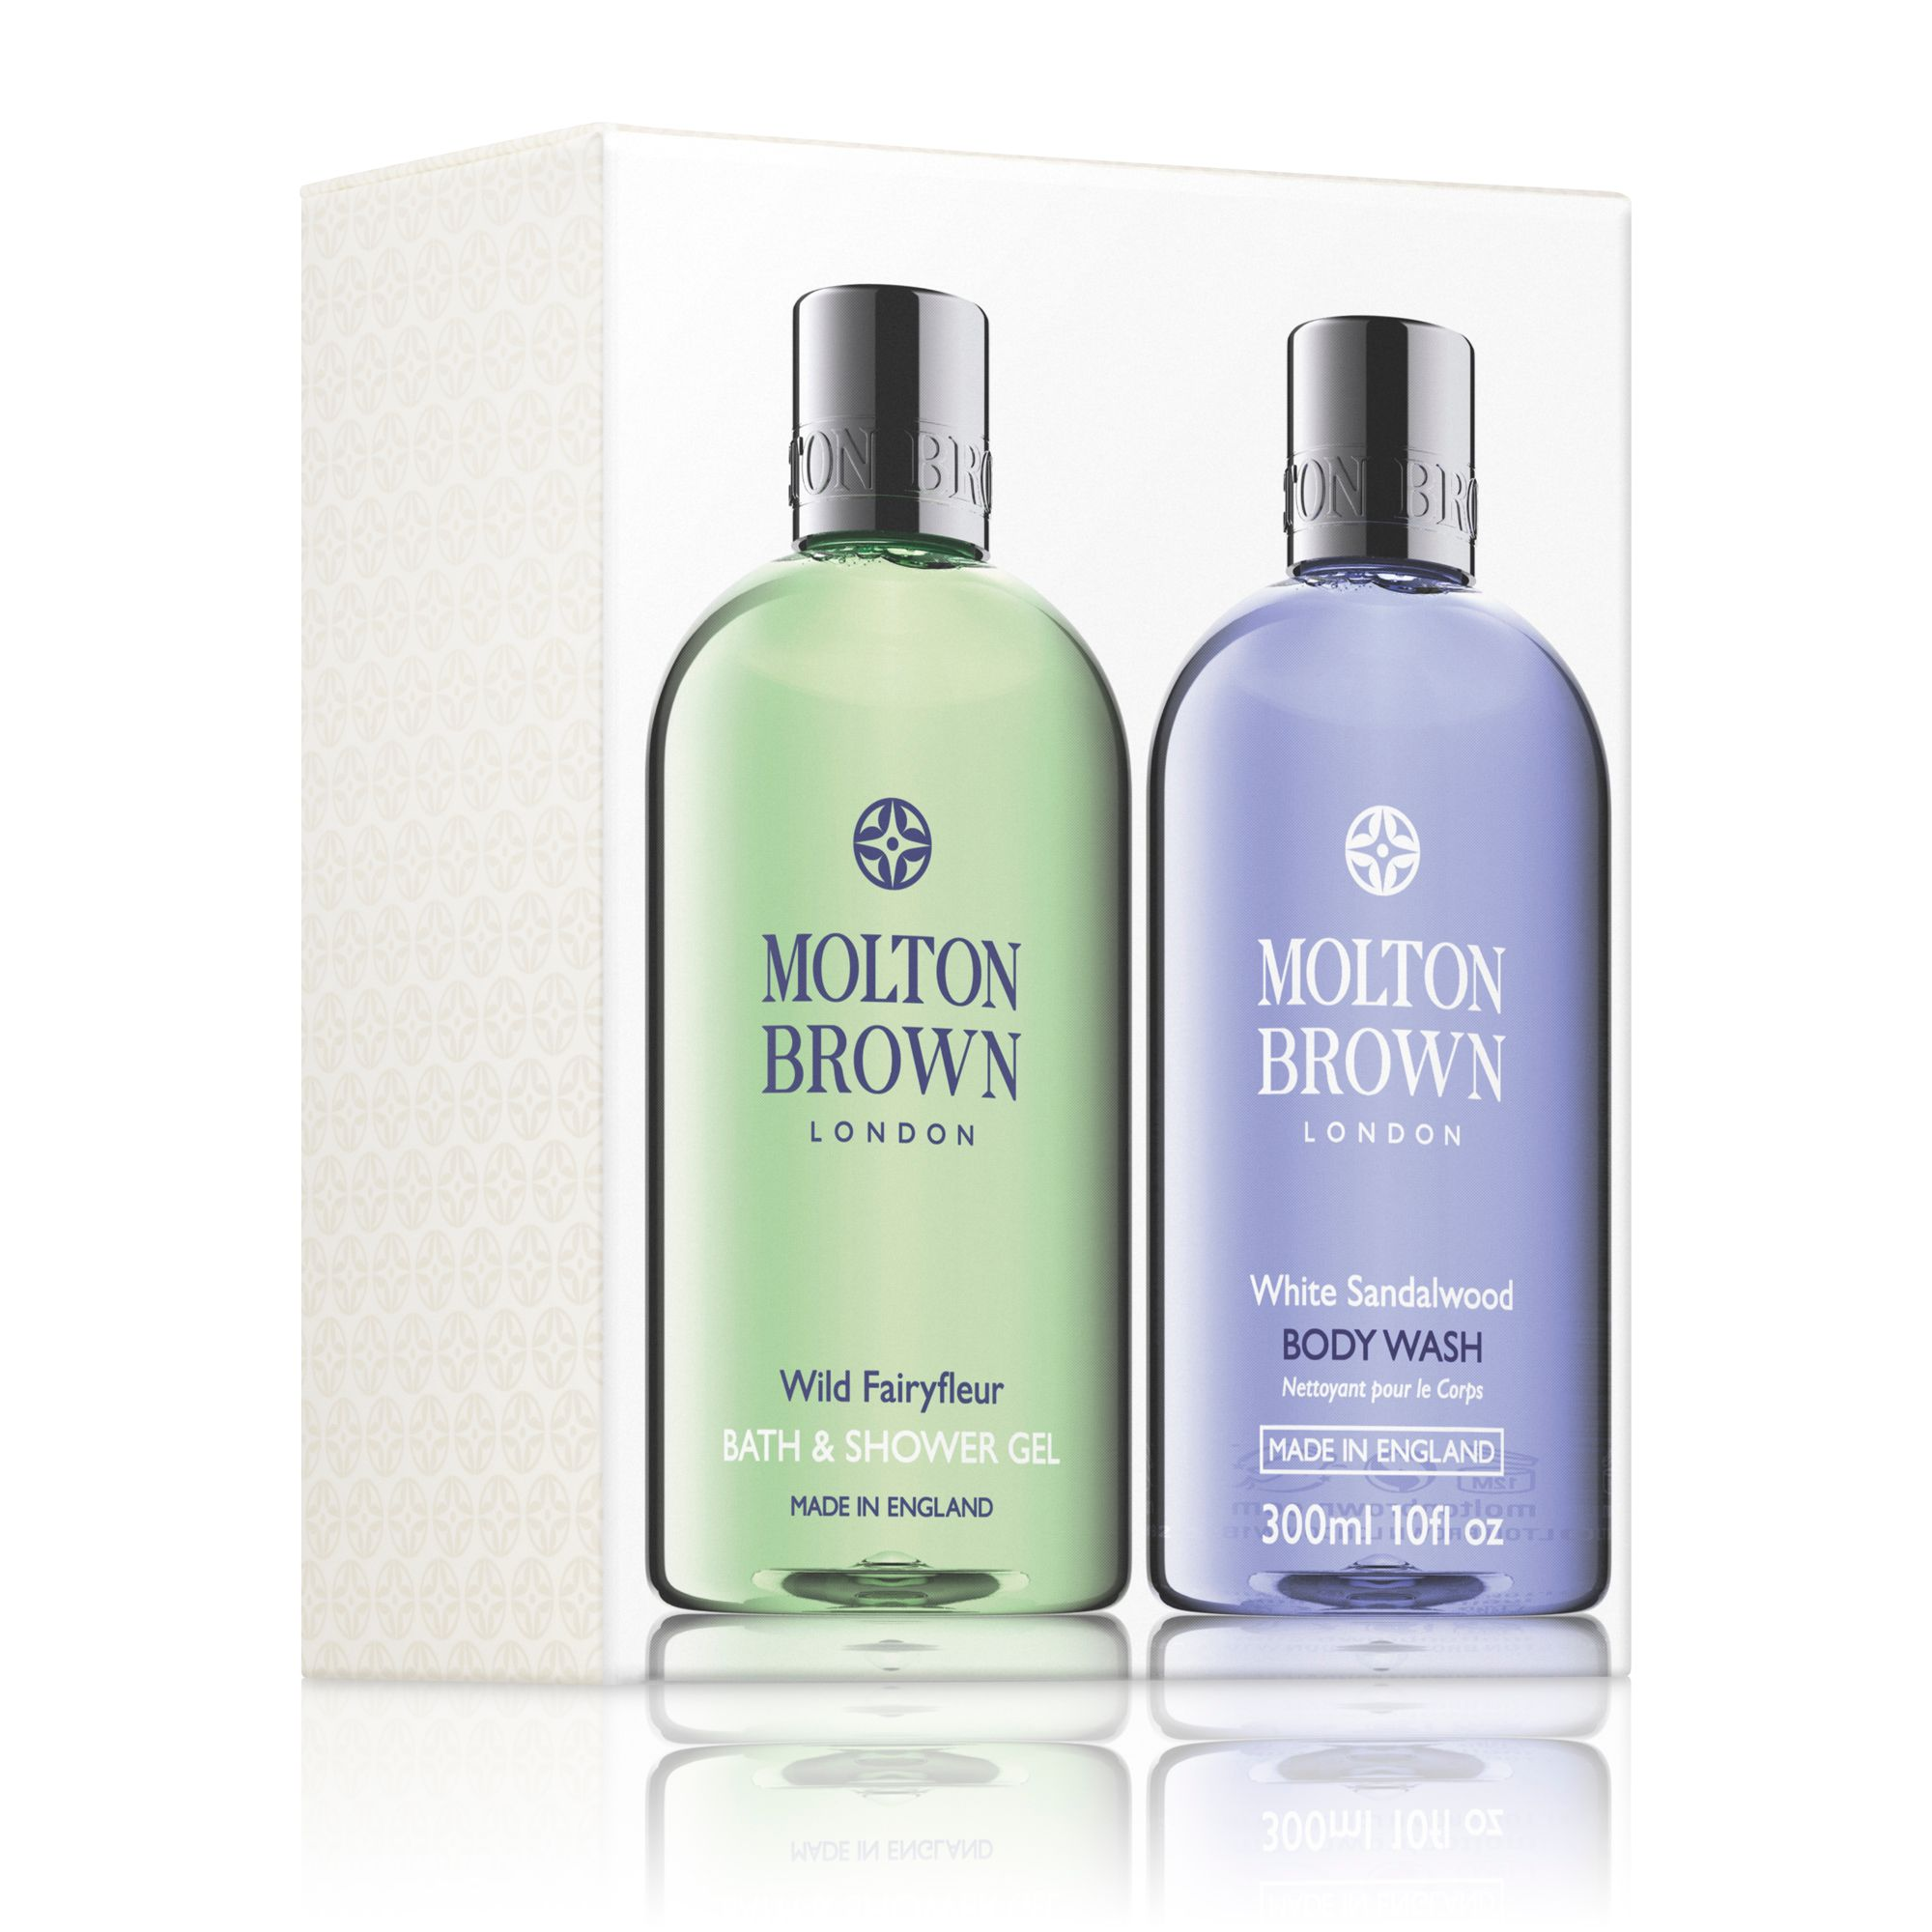 Molton Brown Bath And Shower Molton Brown Gift Sets At Boots Gift Ftempo